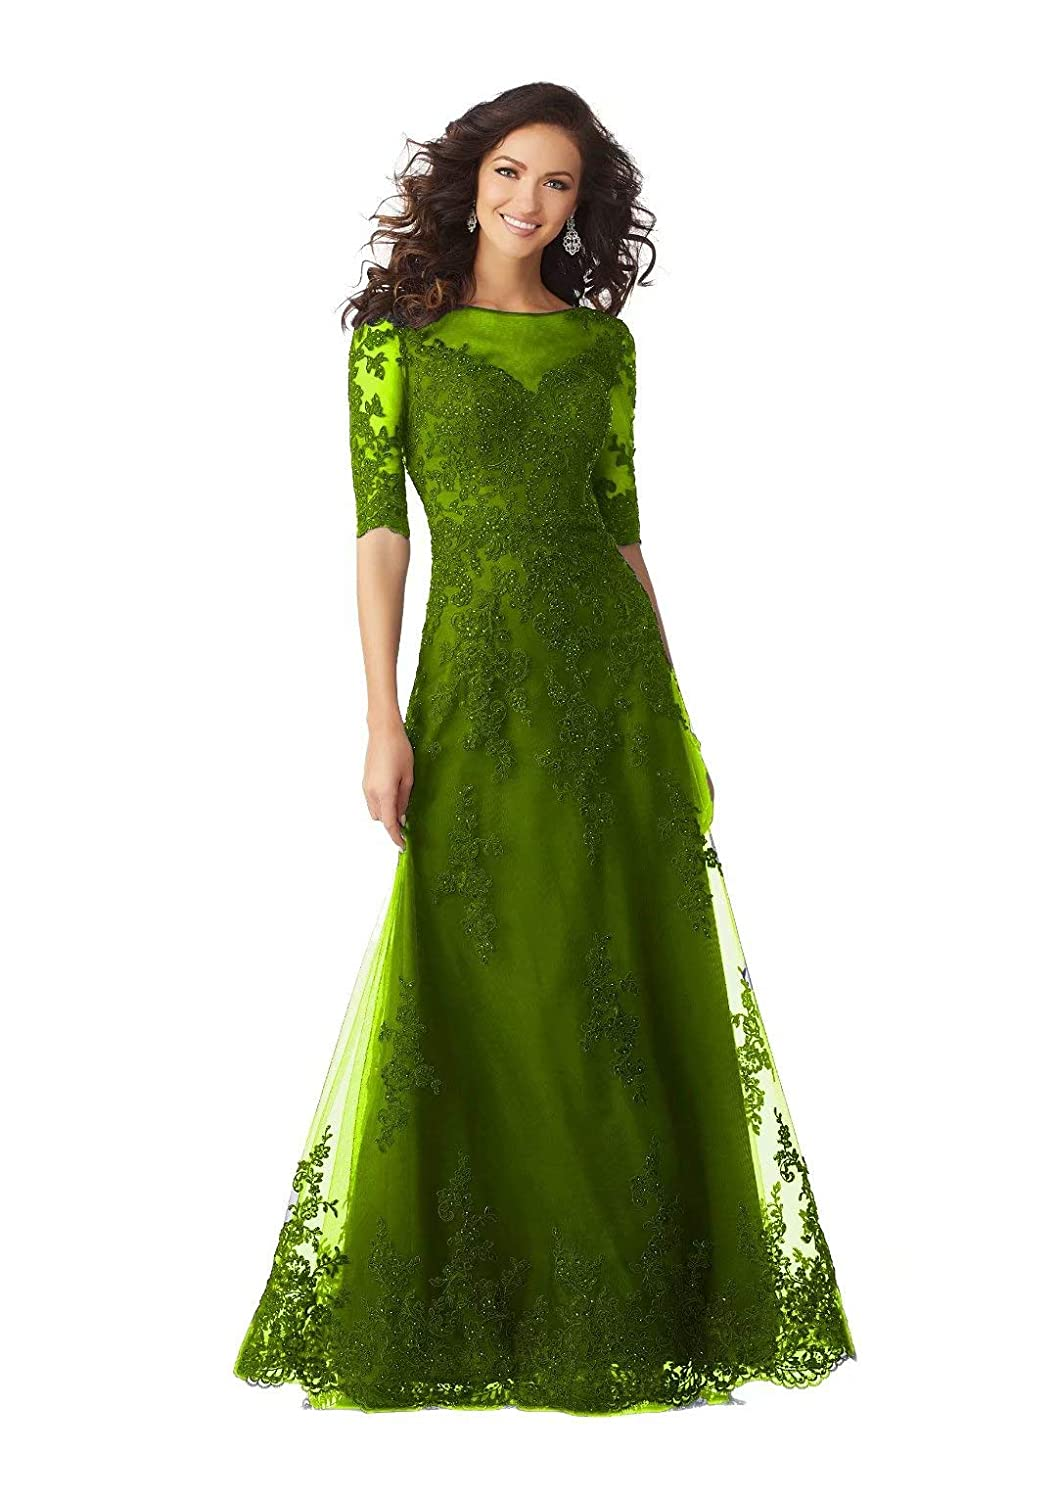 color 10 Unions Women Long Formal Evening Dresses Lace Applique Beaded Prom Party Gowns